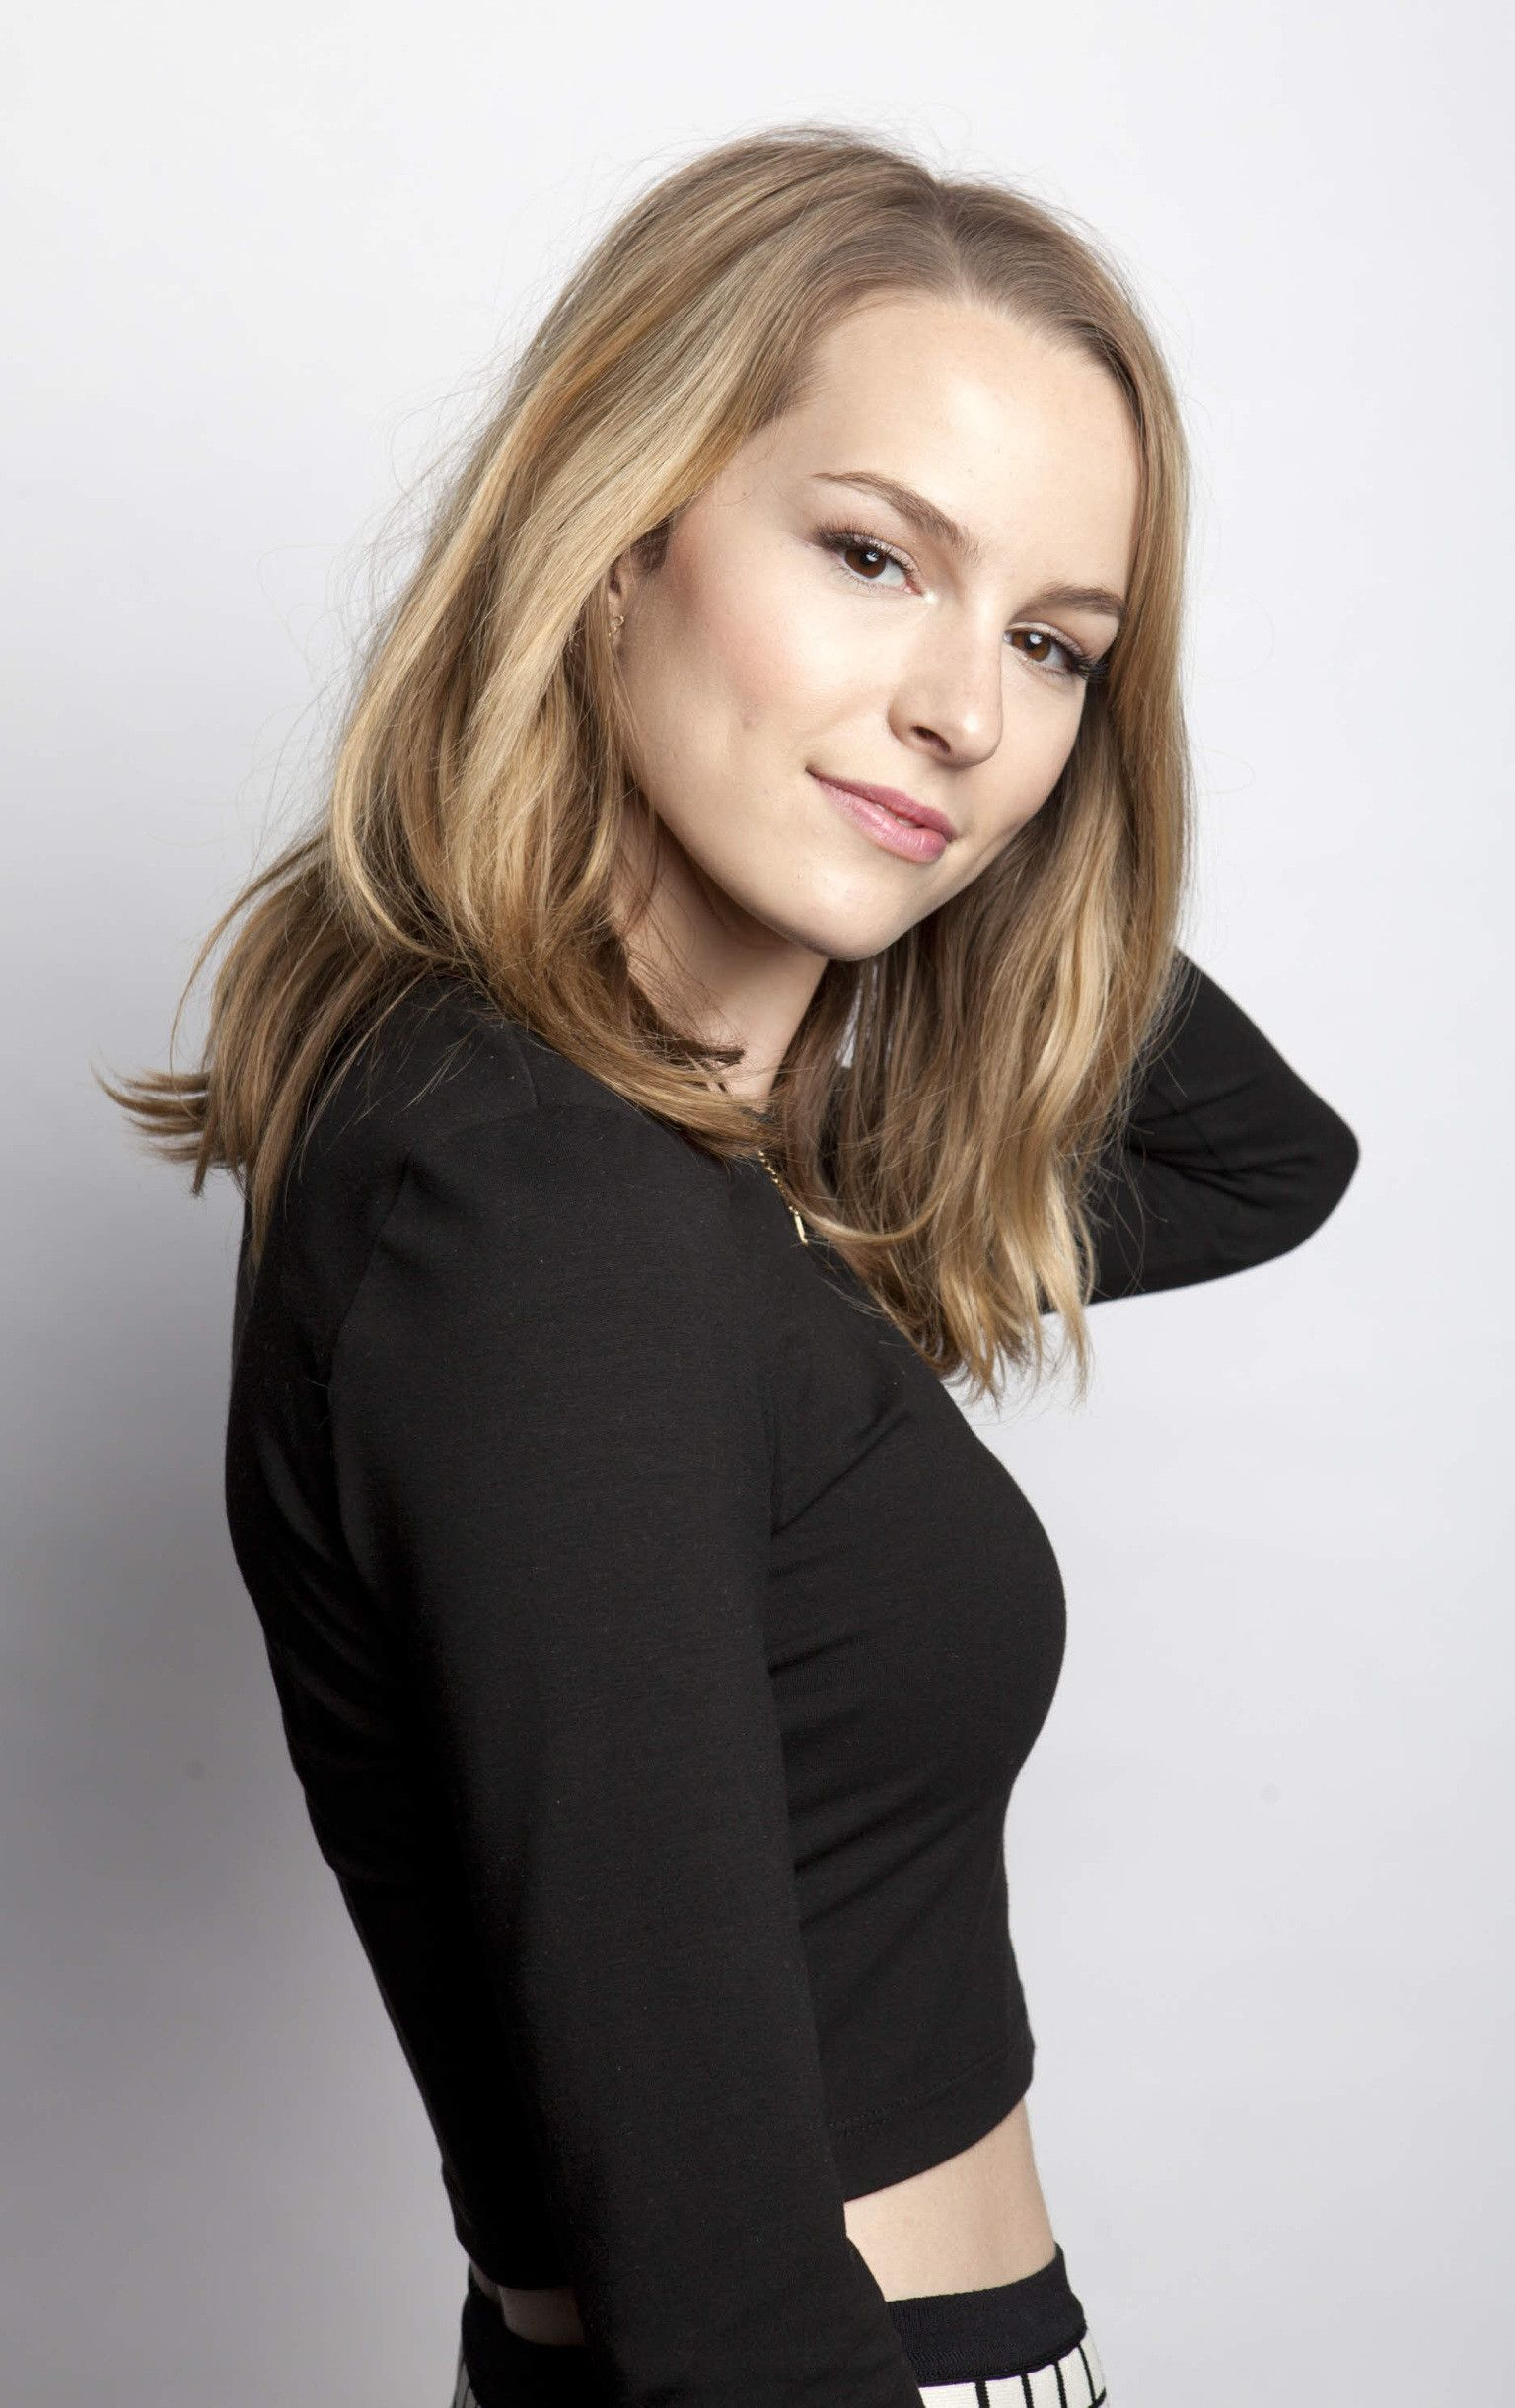 Bridgit Mendler  - 2018 Light blond hair & alternative hair style.